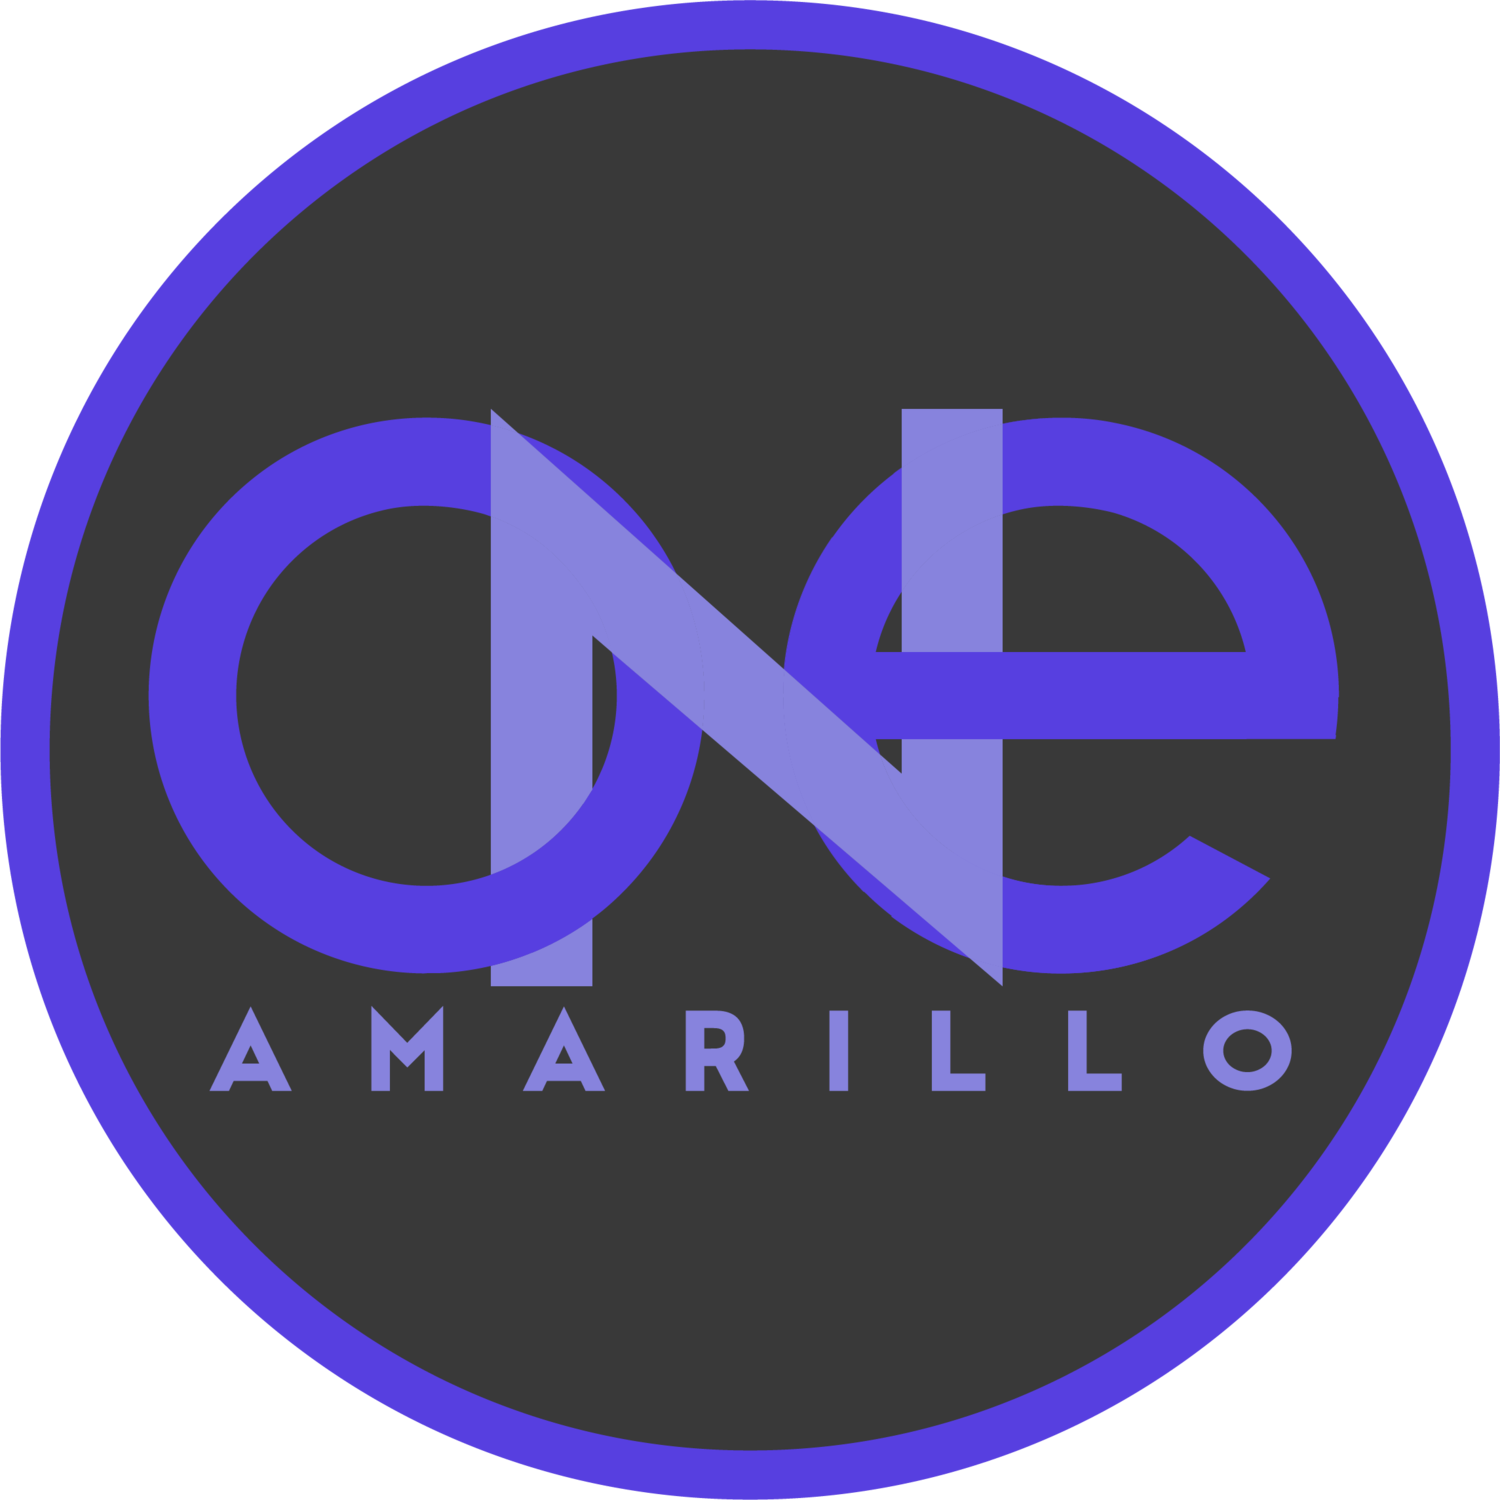 One-Amarillo